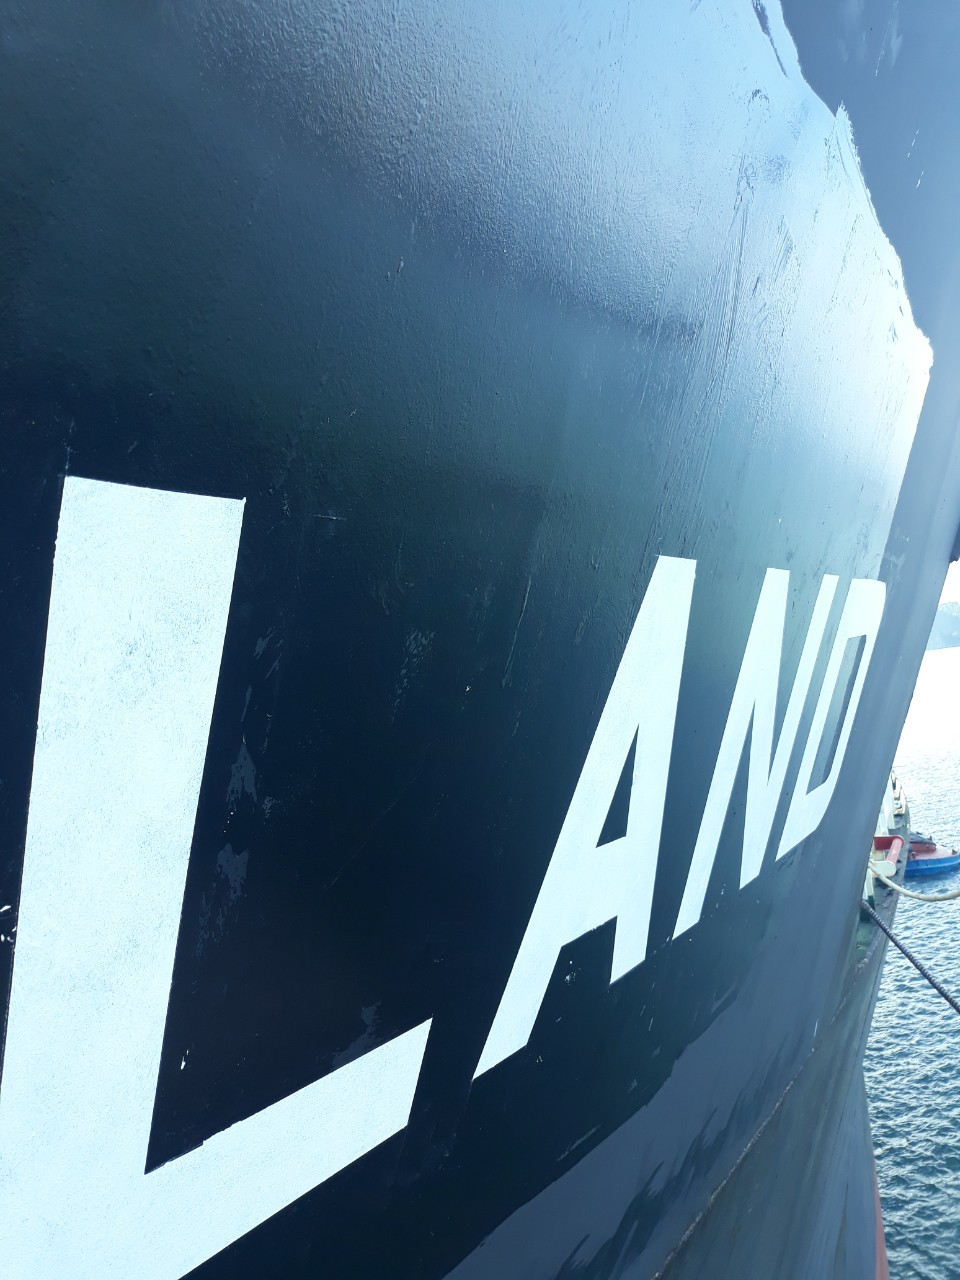 PAINTING SHIP NAME IN VIETNAM